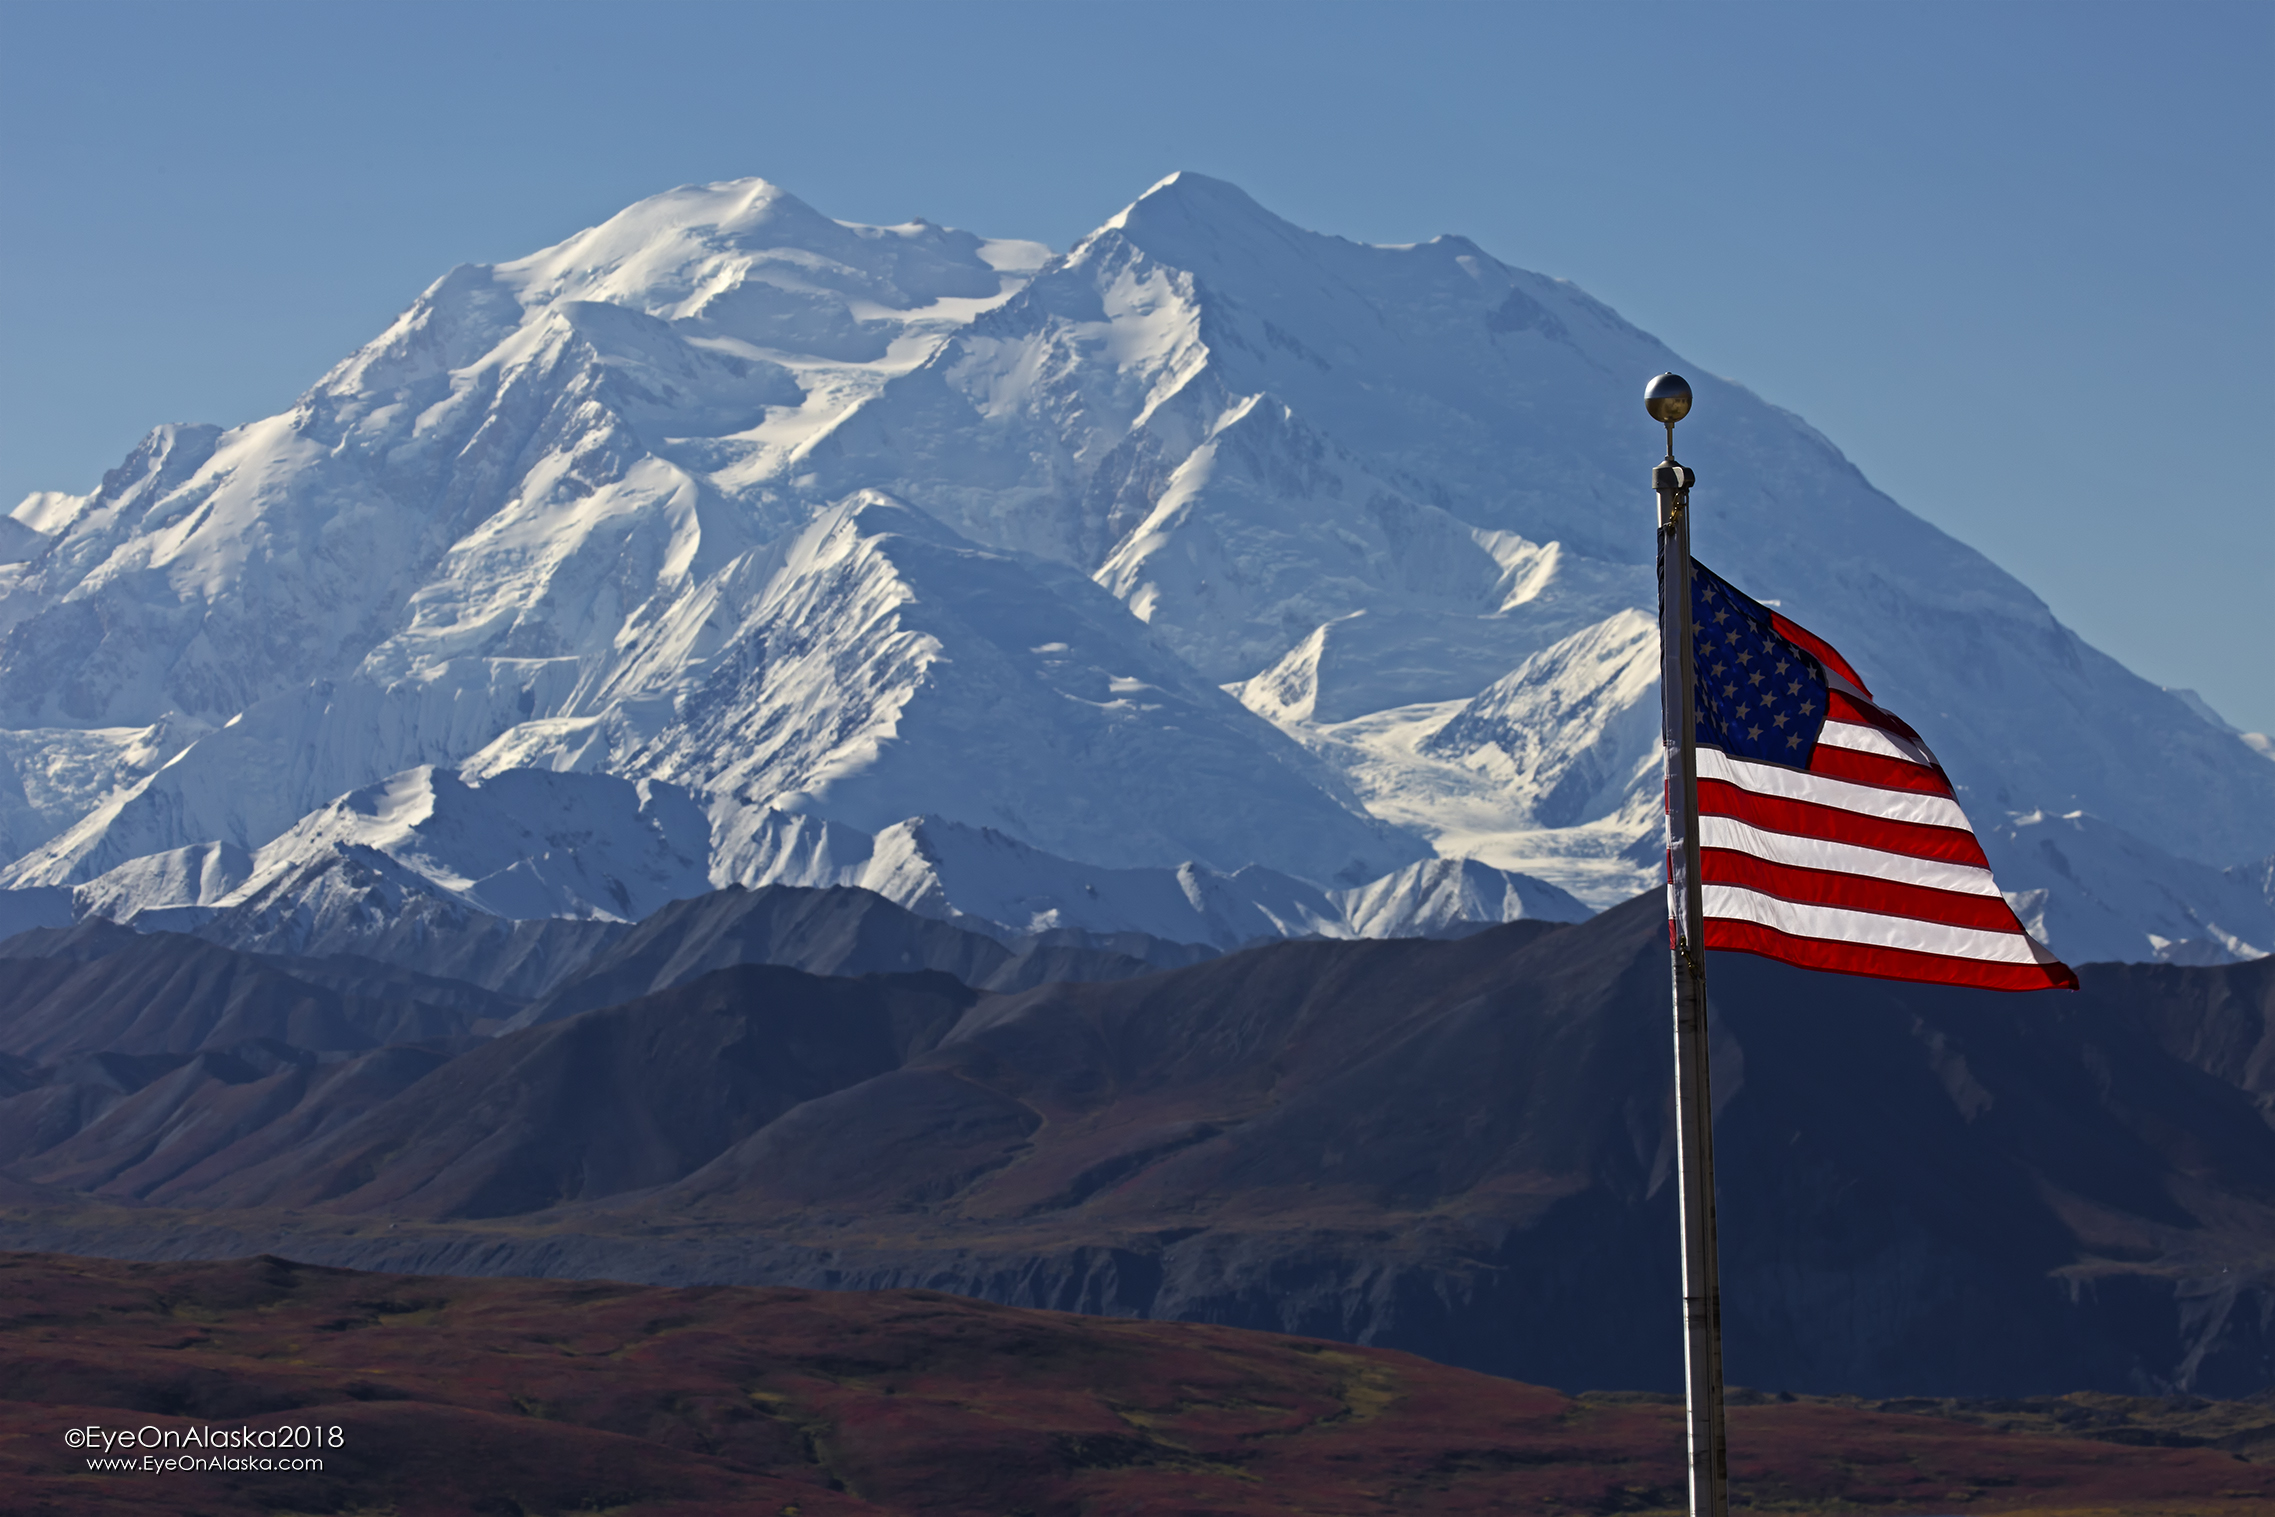 Denali from the Eielson Visitor Center.